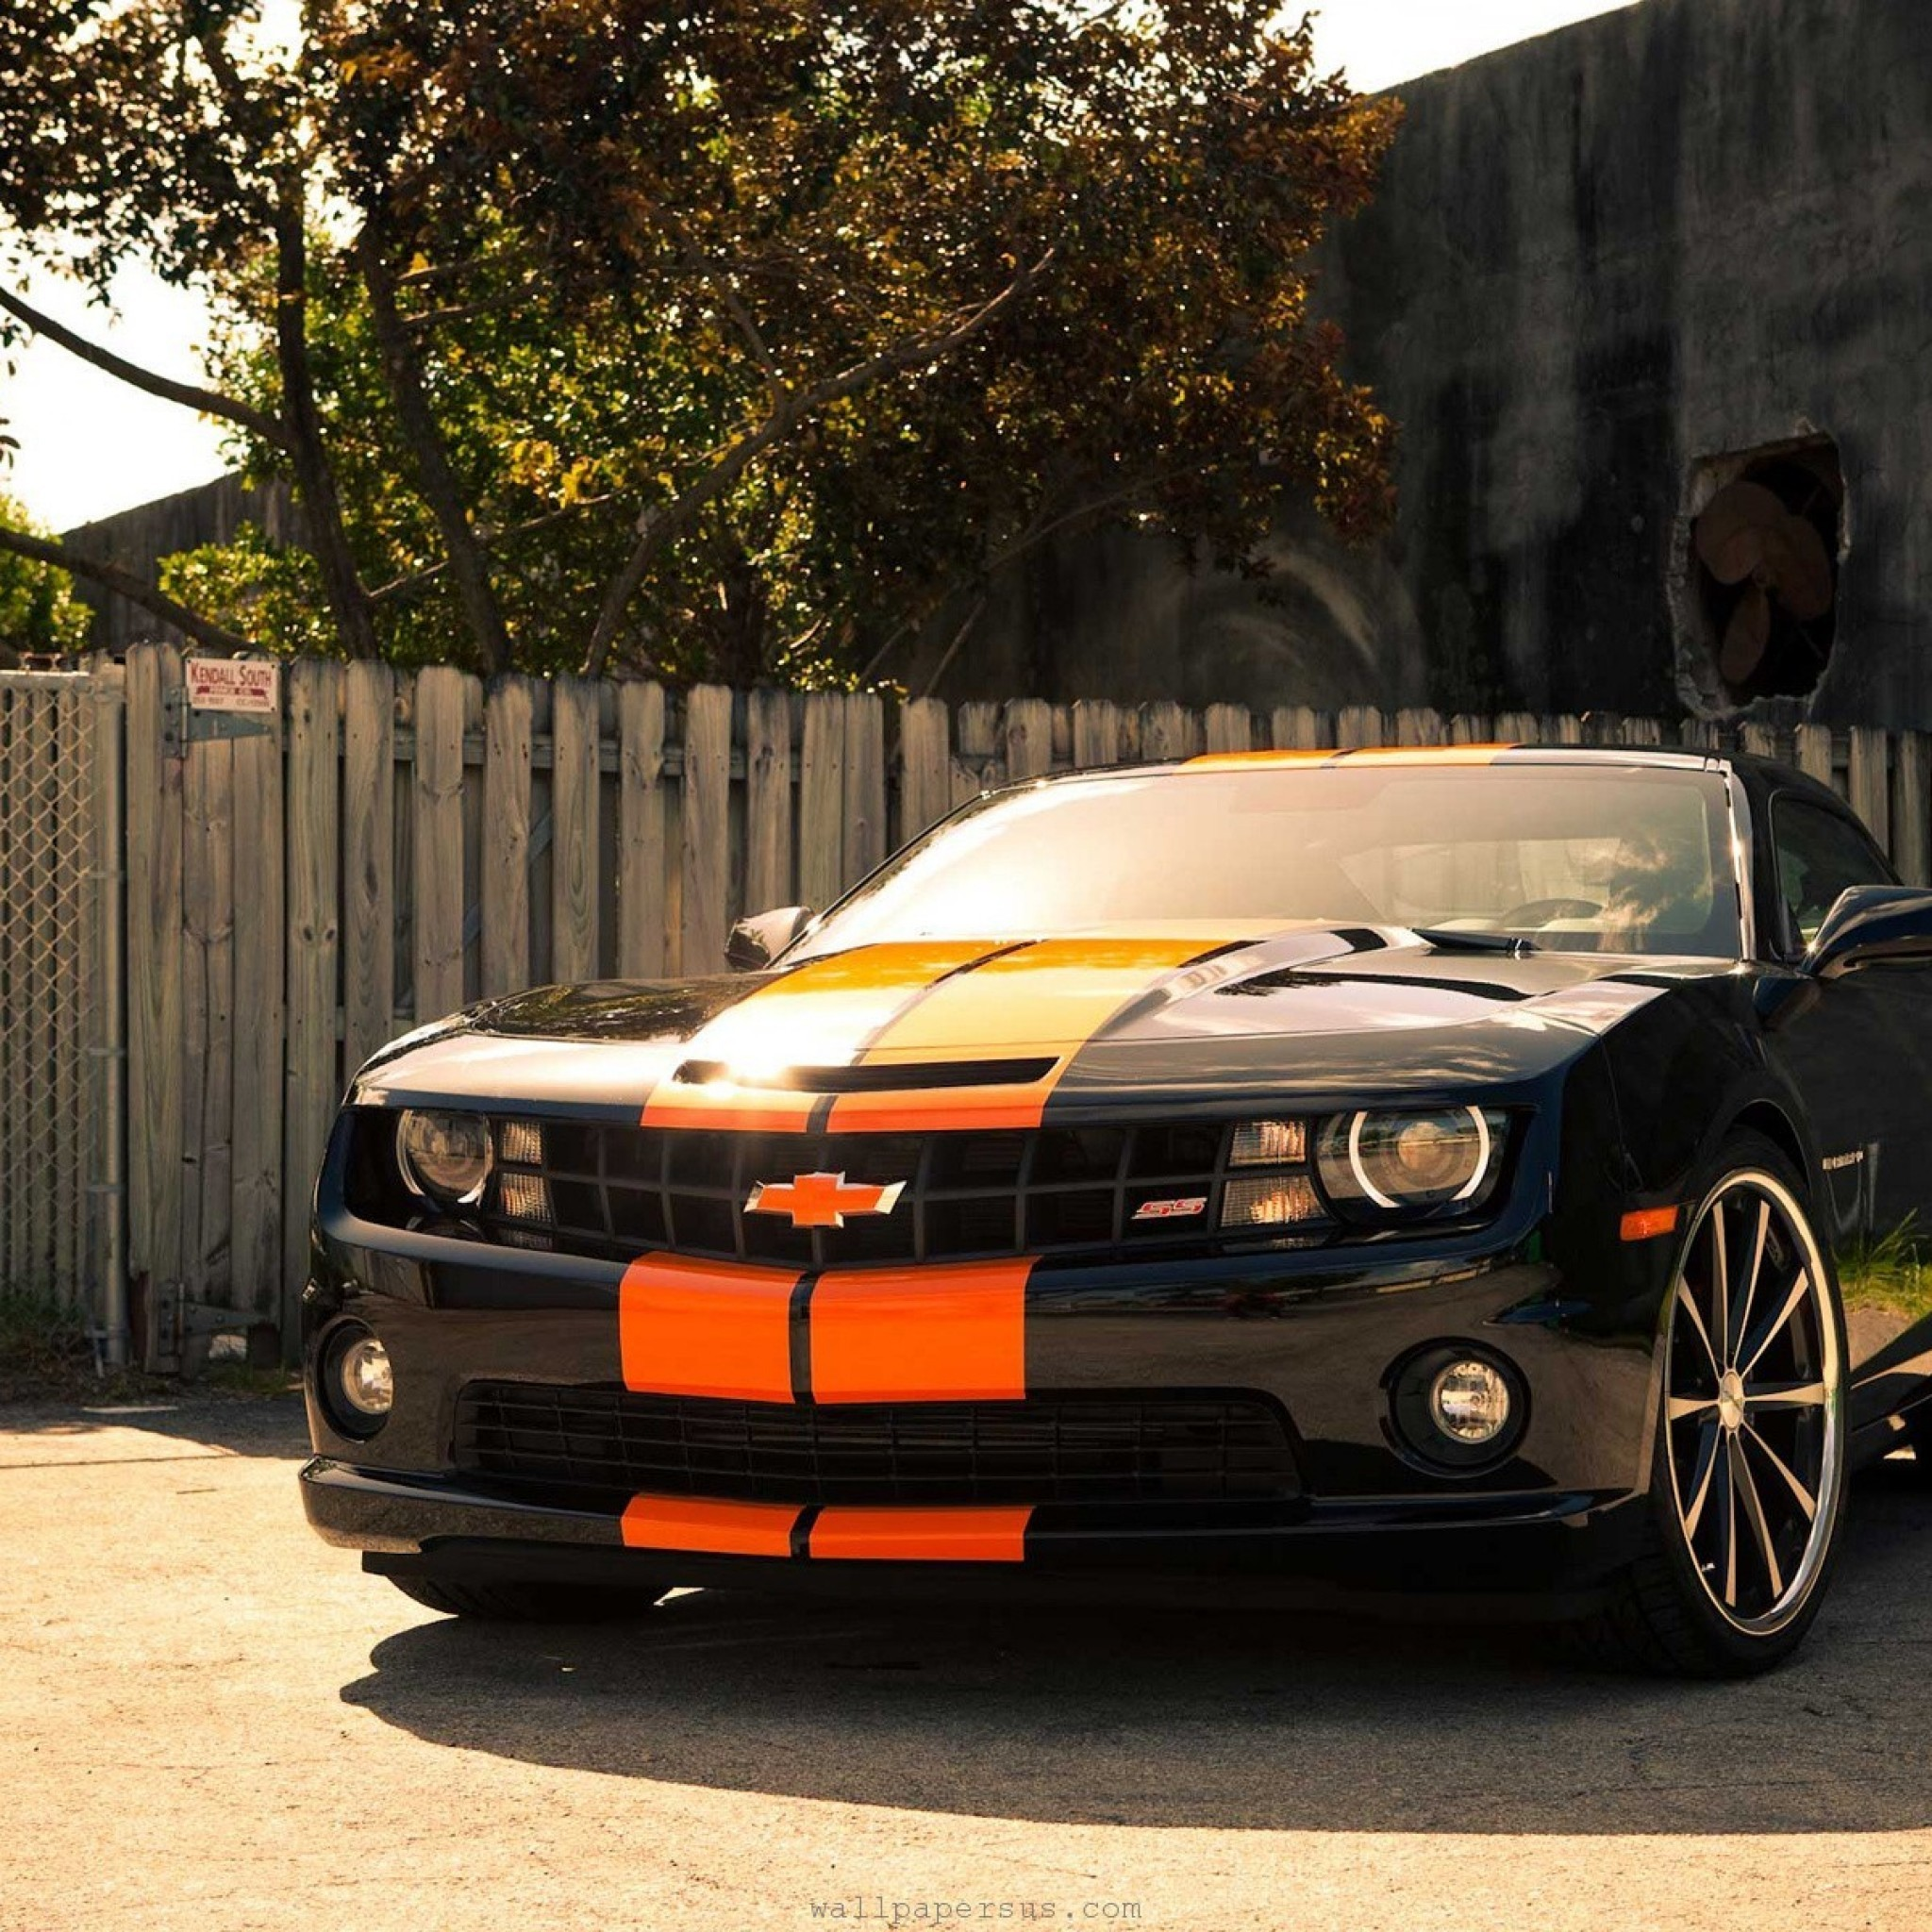 Chevrolet Car Wallpaper: Chevy Bow Tie Wallpaper (62+ Images